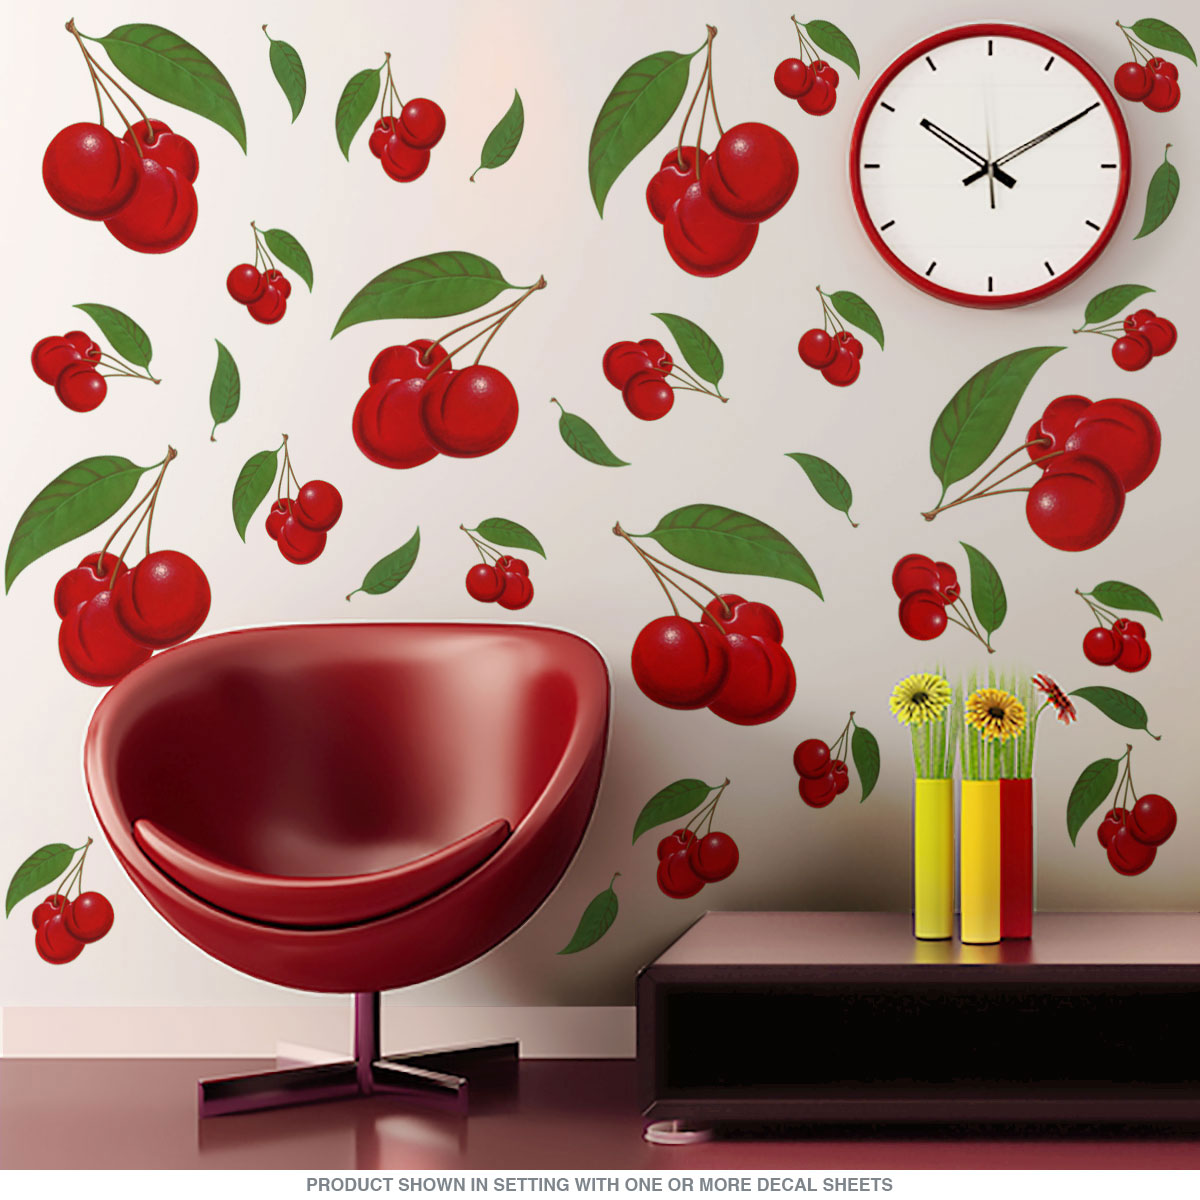 Cherry Bunches Wall Decals Large Set Of 20 At Retro Planet